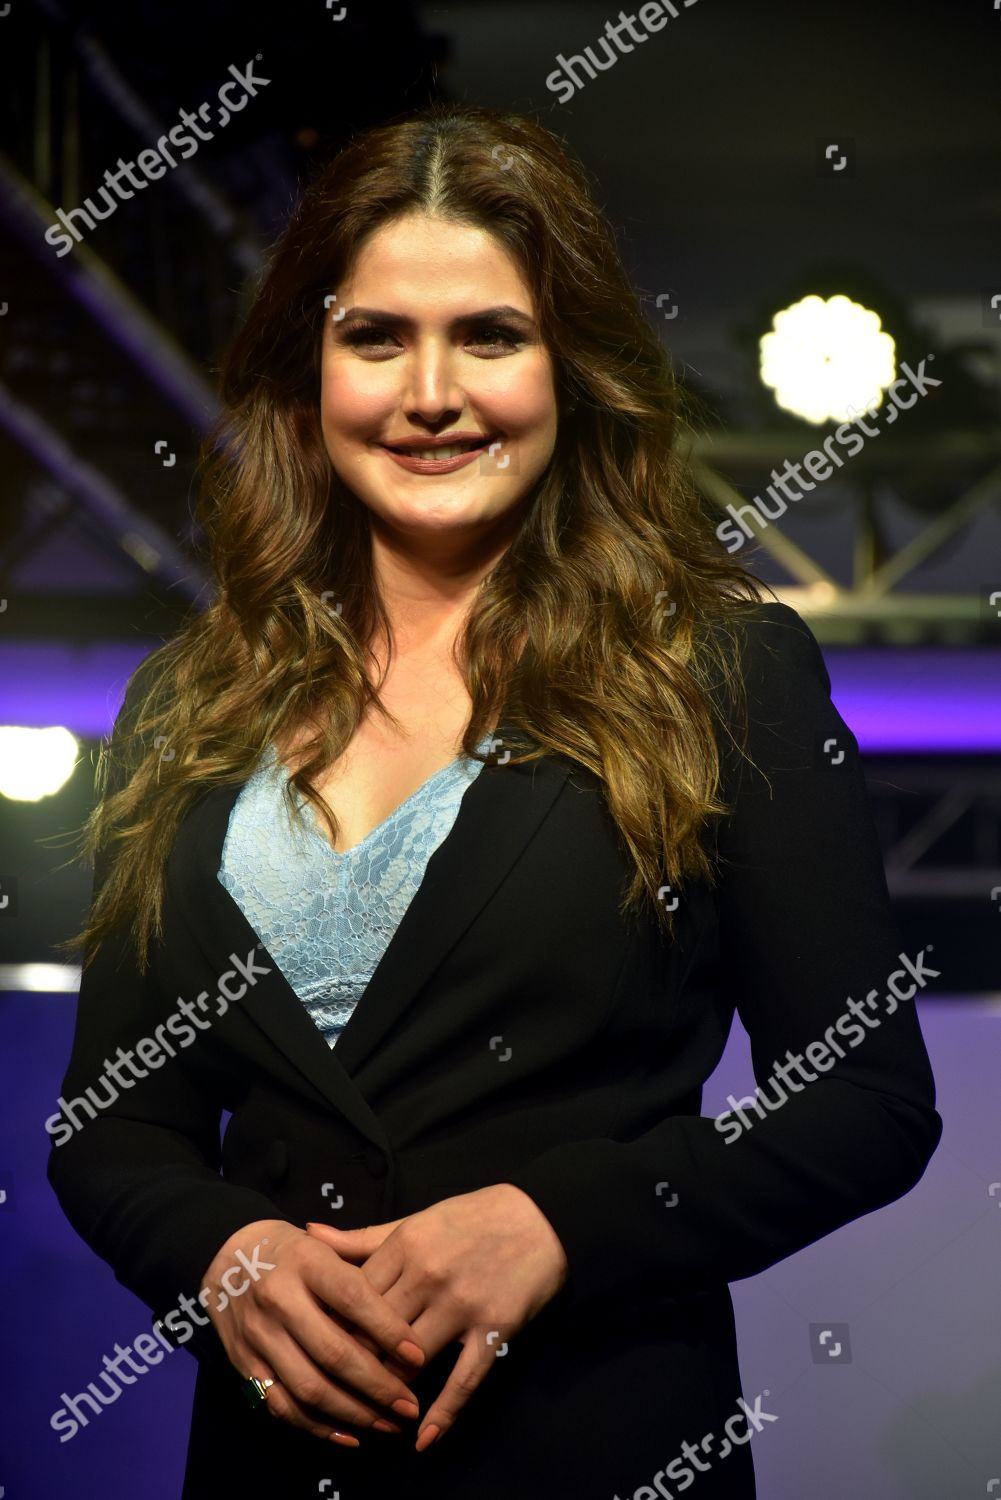 cb6380c4f Zarine Khan on catwalk Editorial Stock Photo - Stock Image ...